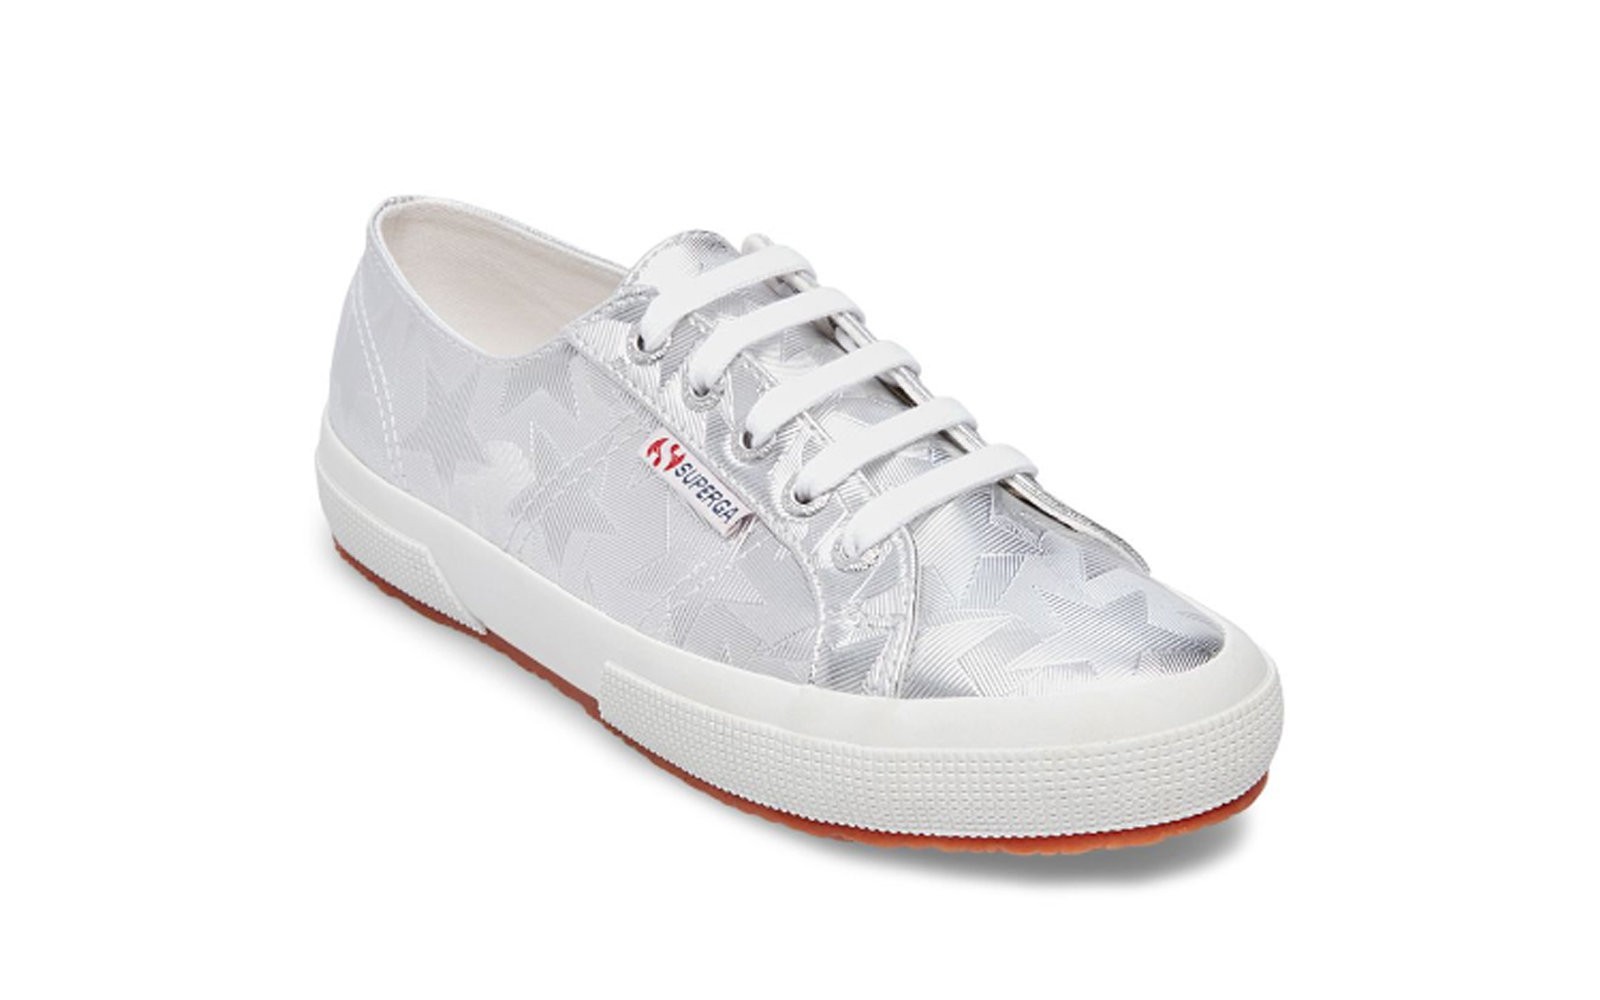 Superga Starchrome Lace-up Sneakers